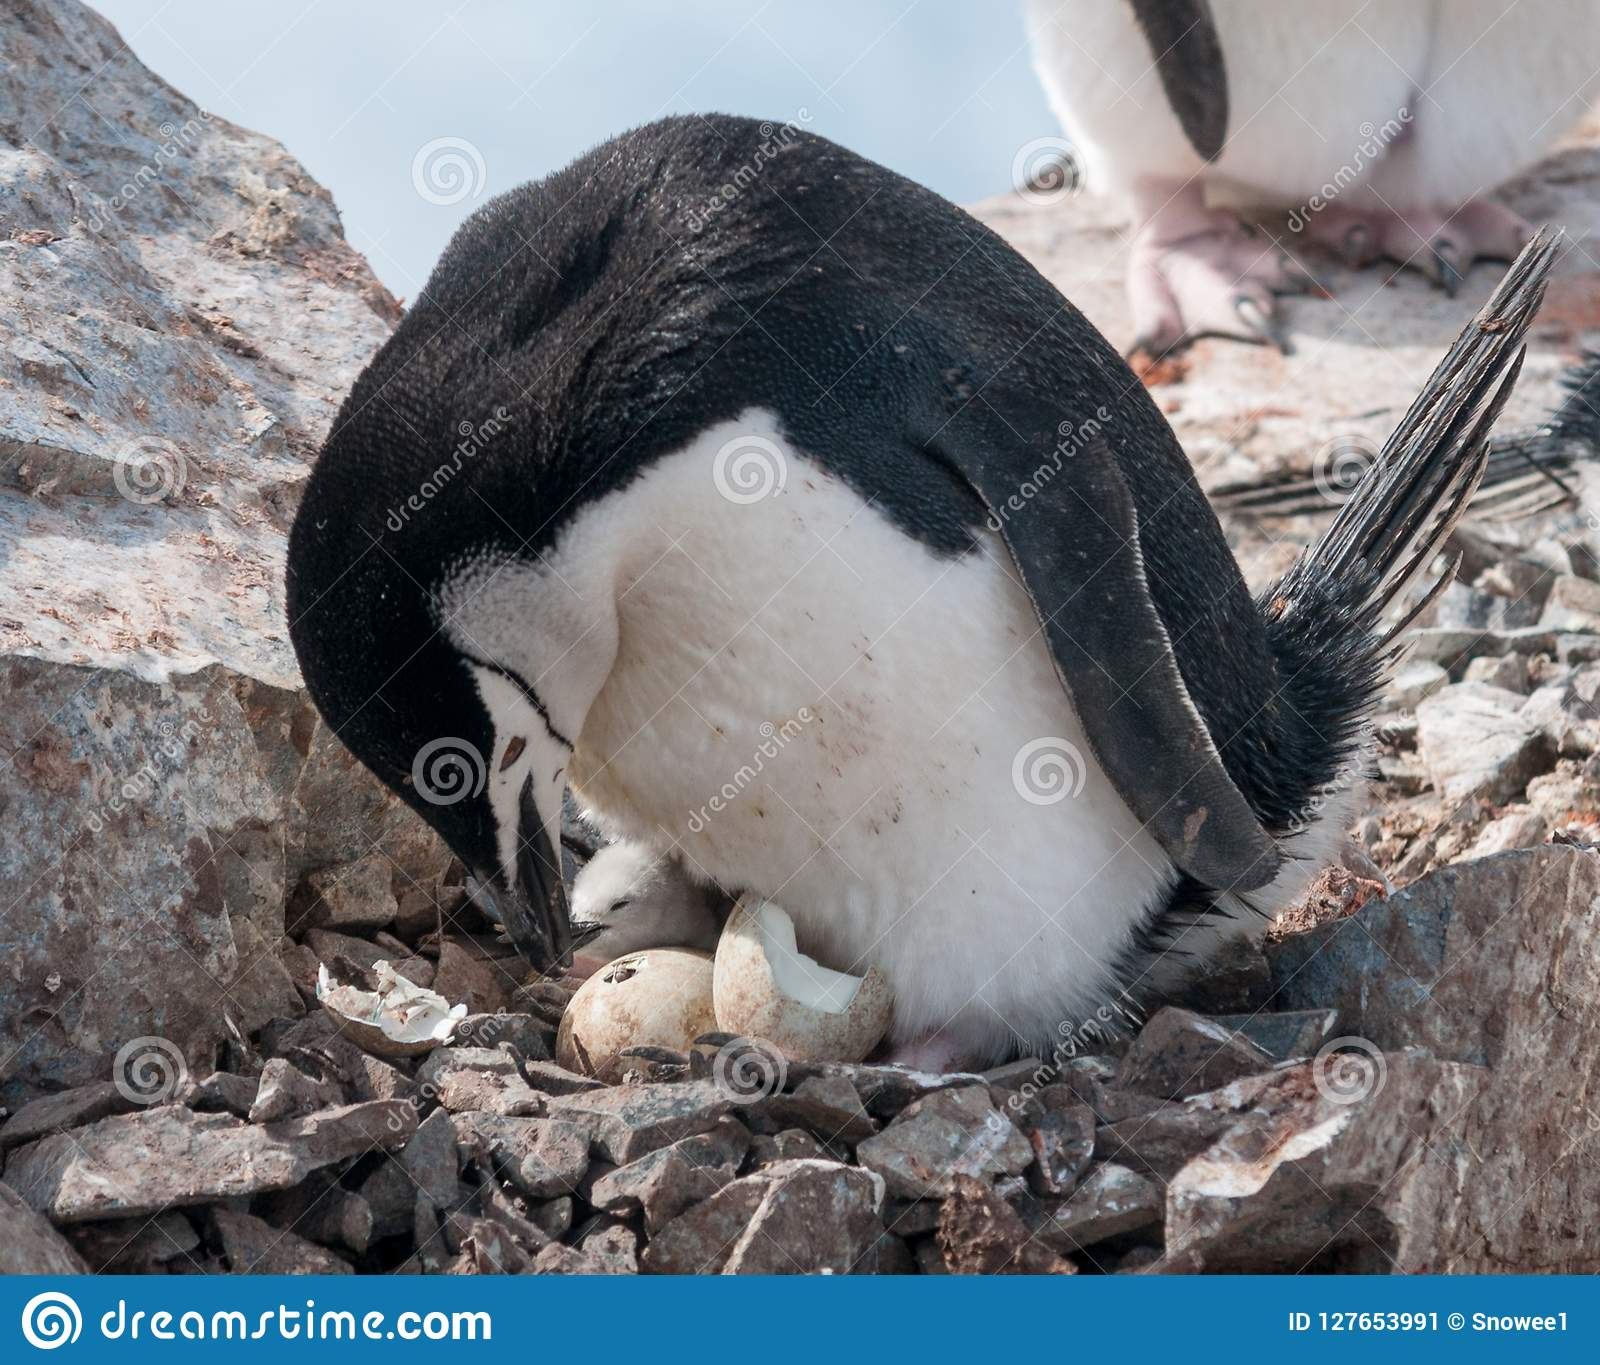 Adult Chinstrap Penguin with chick and hatching egg, Antarctic Peninsula